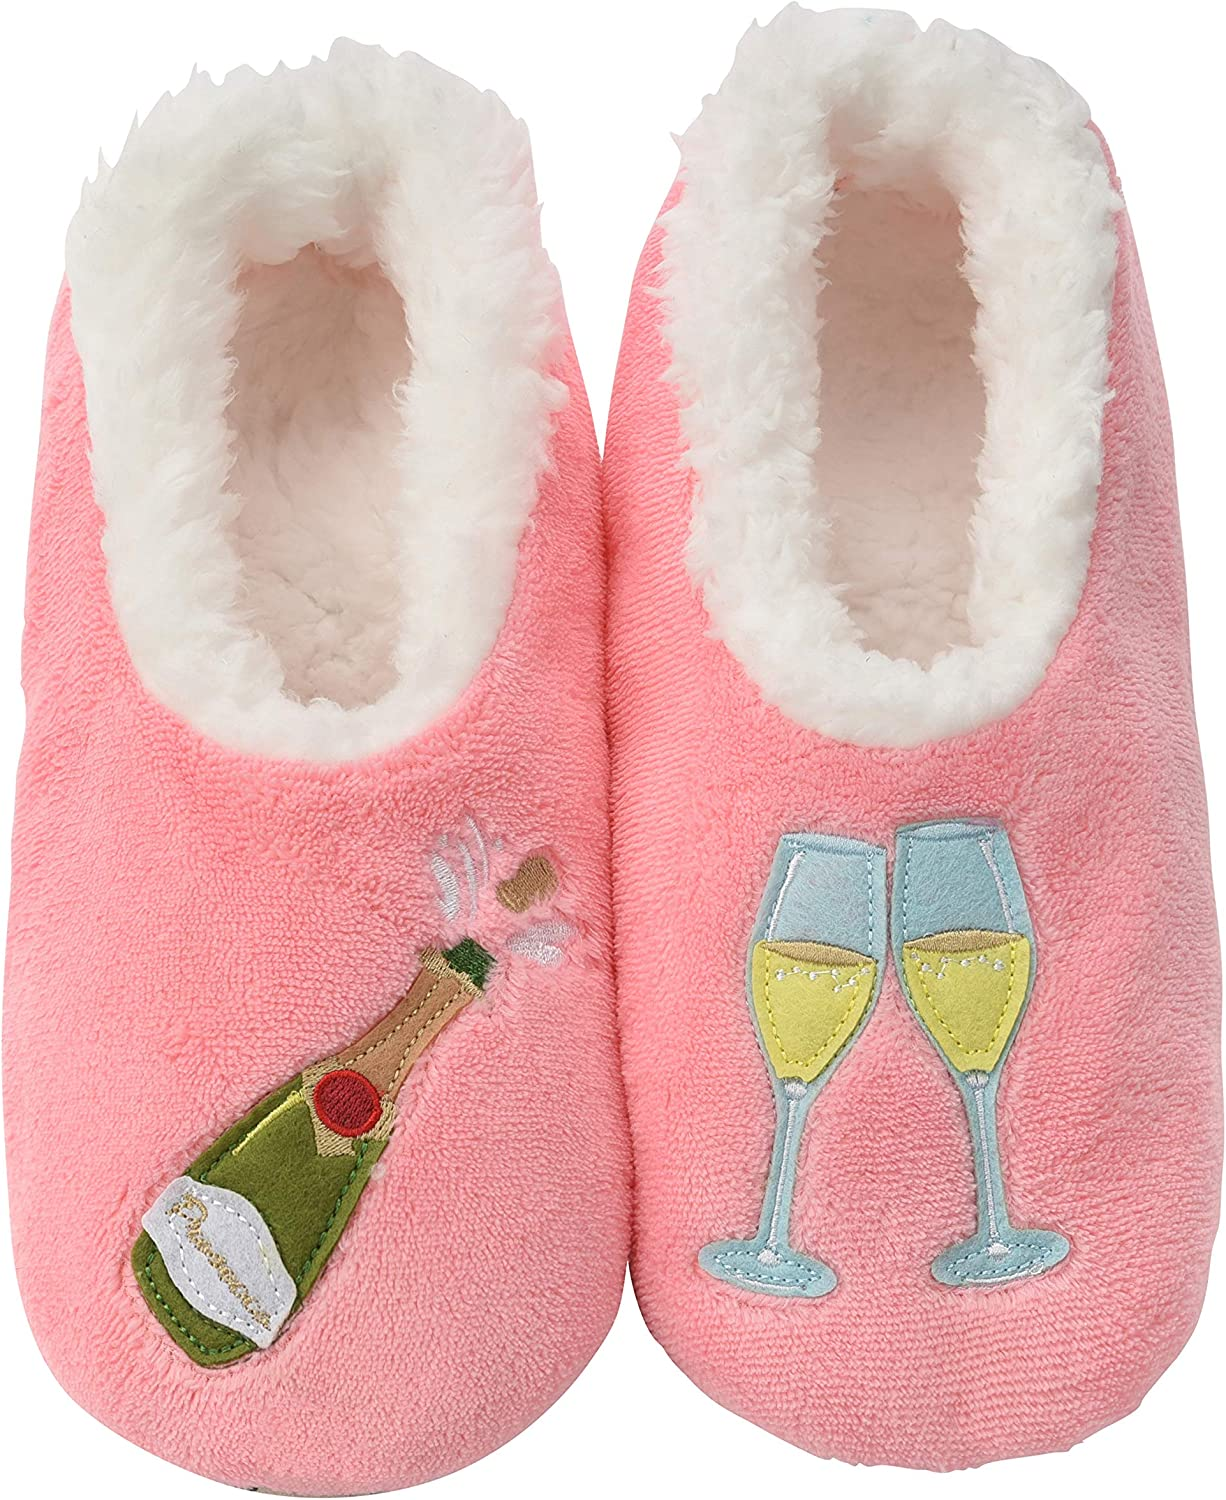 Snoozies Pairables Womens Slippers - House Slippers - Prosecco Pink